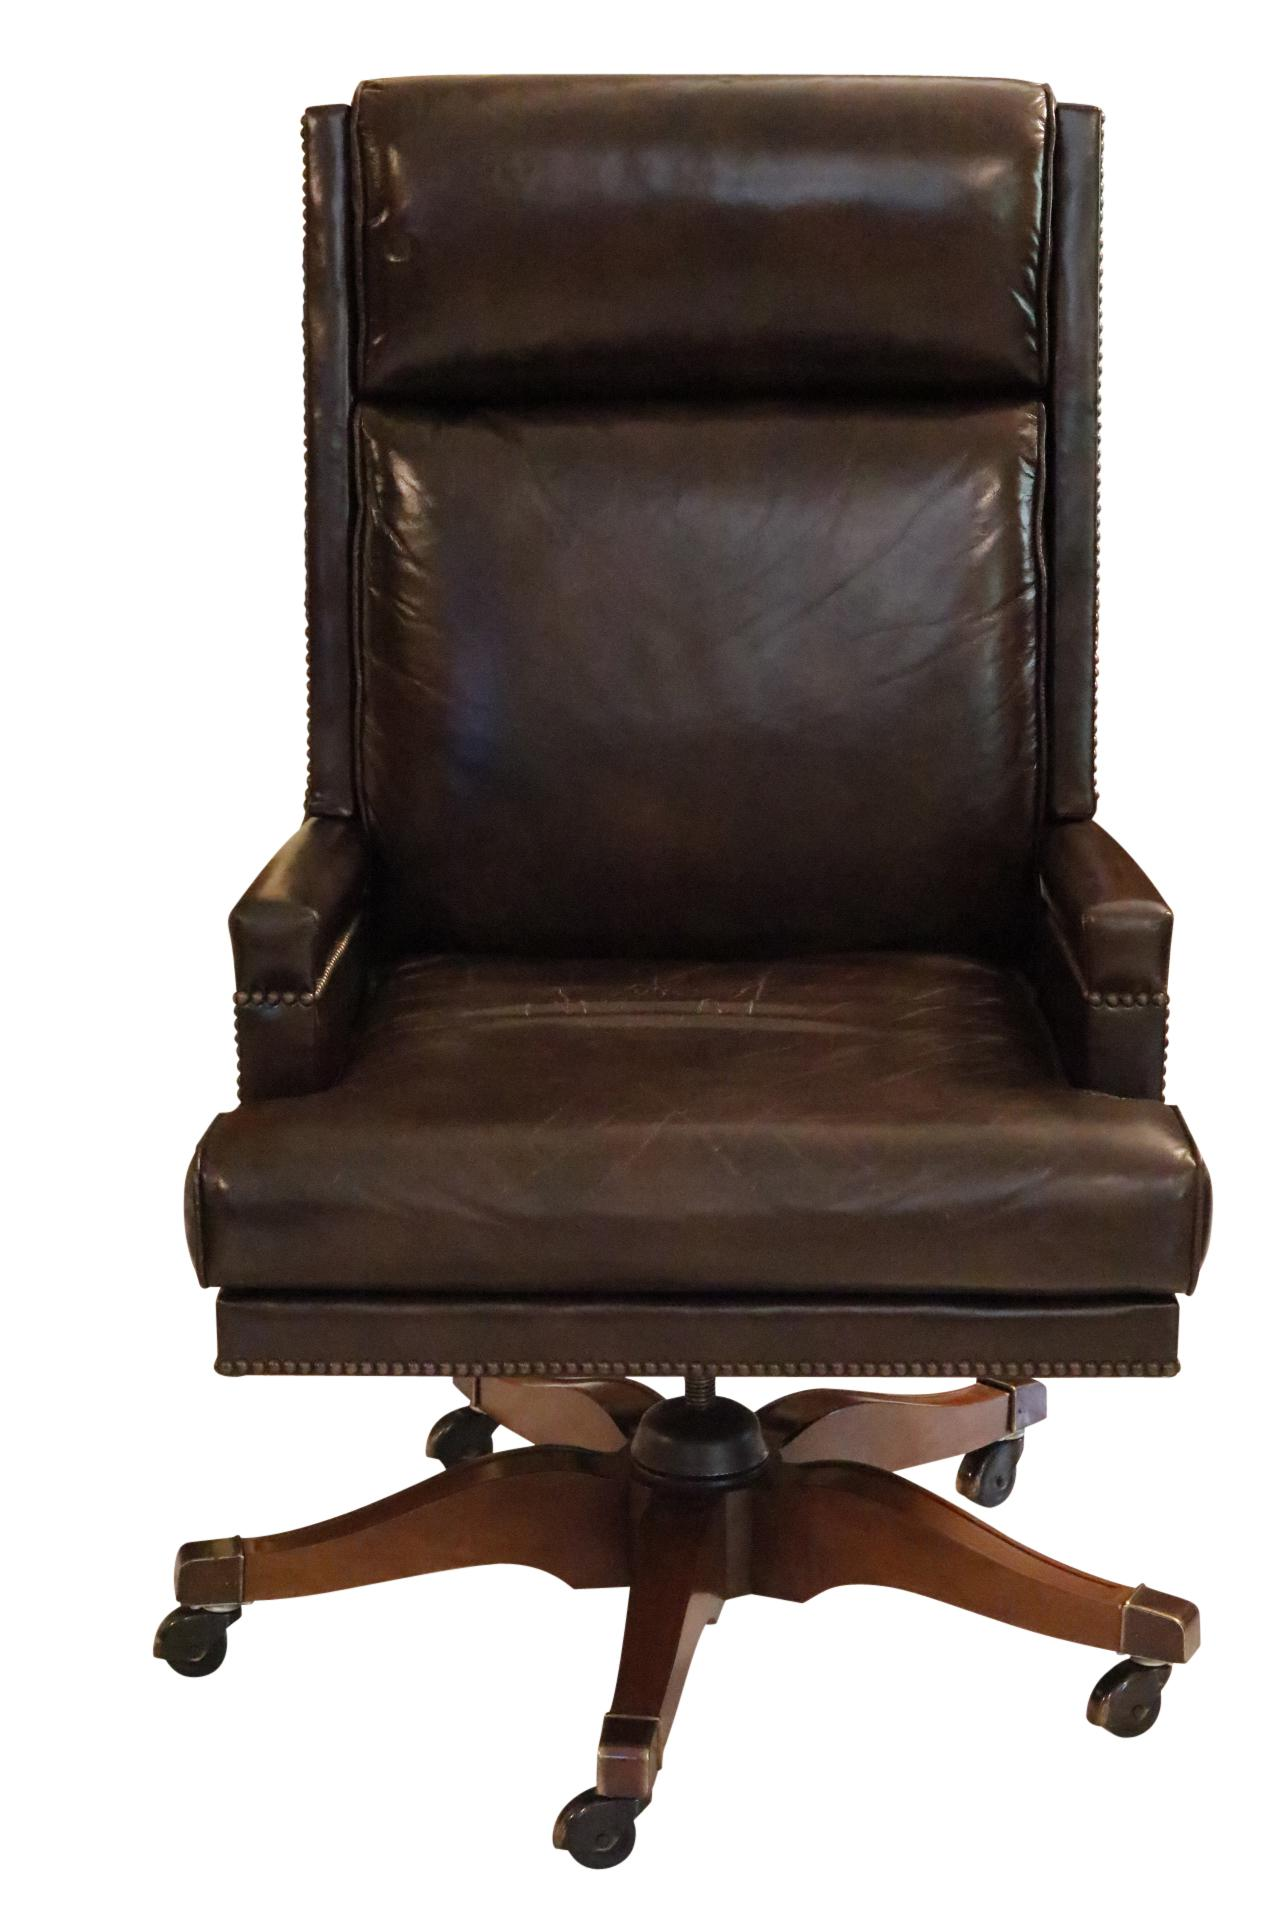 An executive leather desk chair made by Baker Furniture. Brown leather is  secured with brass